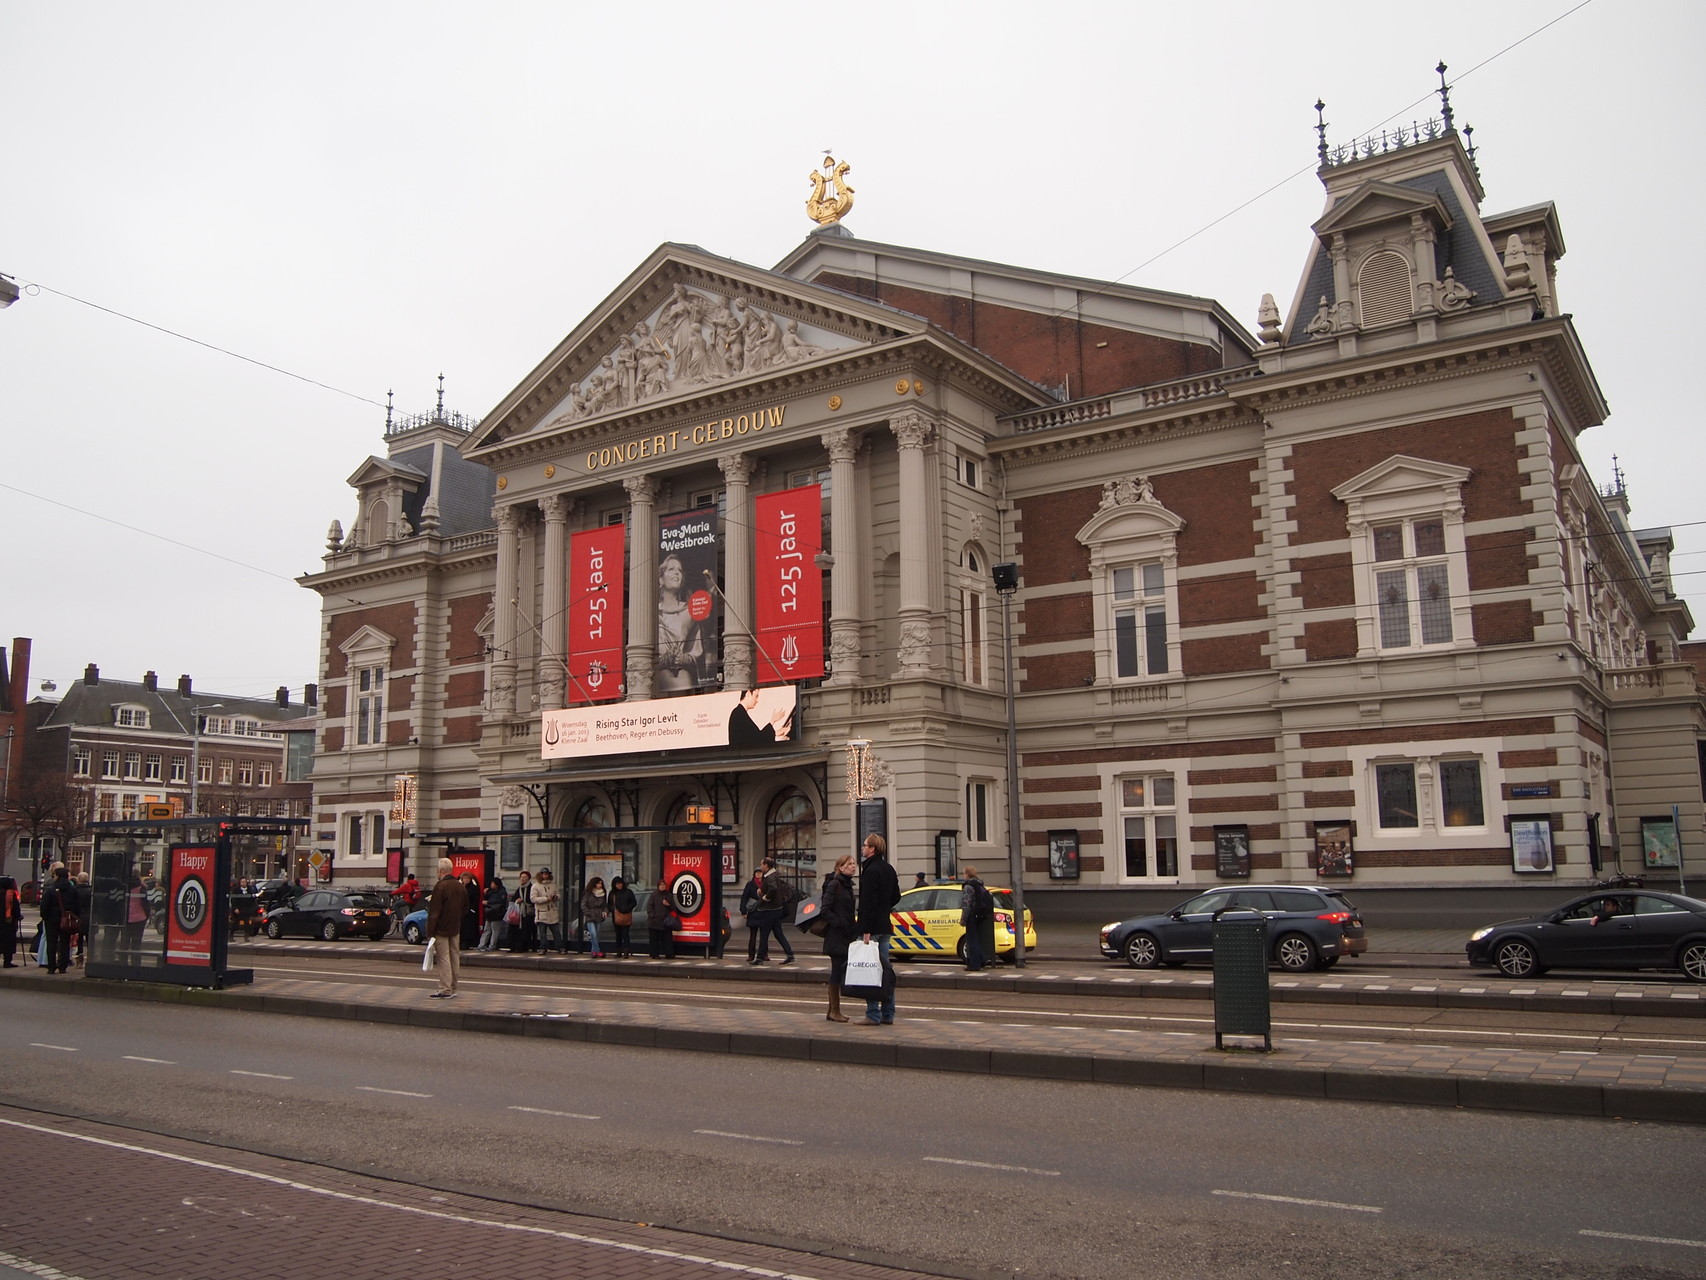 Royal Concertgebow, Amsterdam